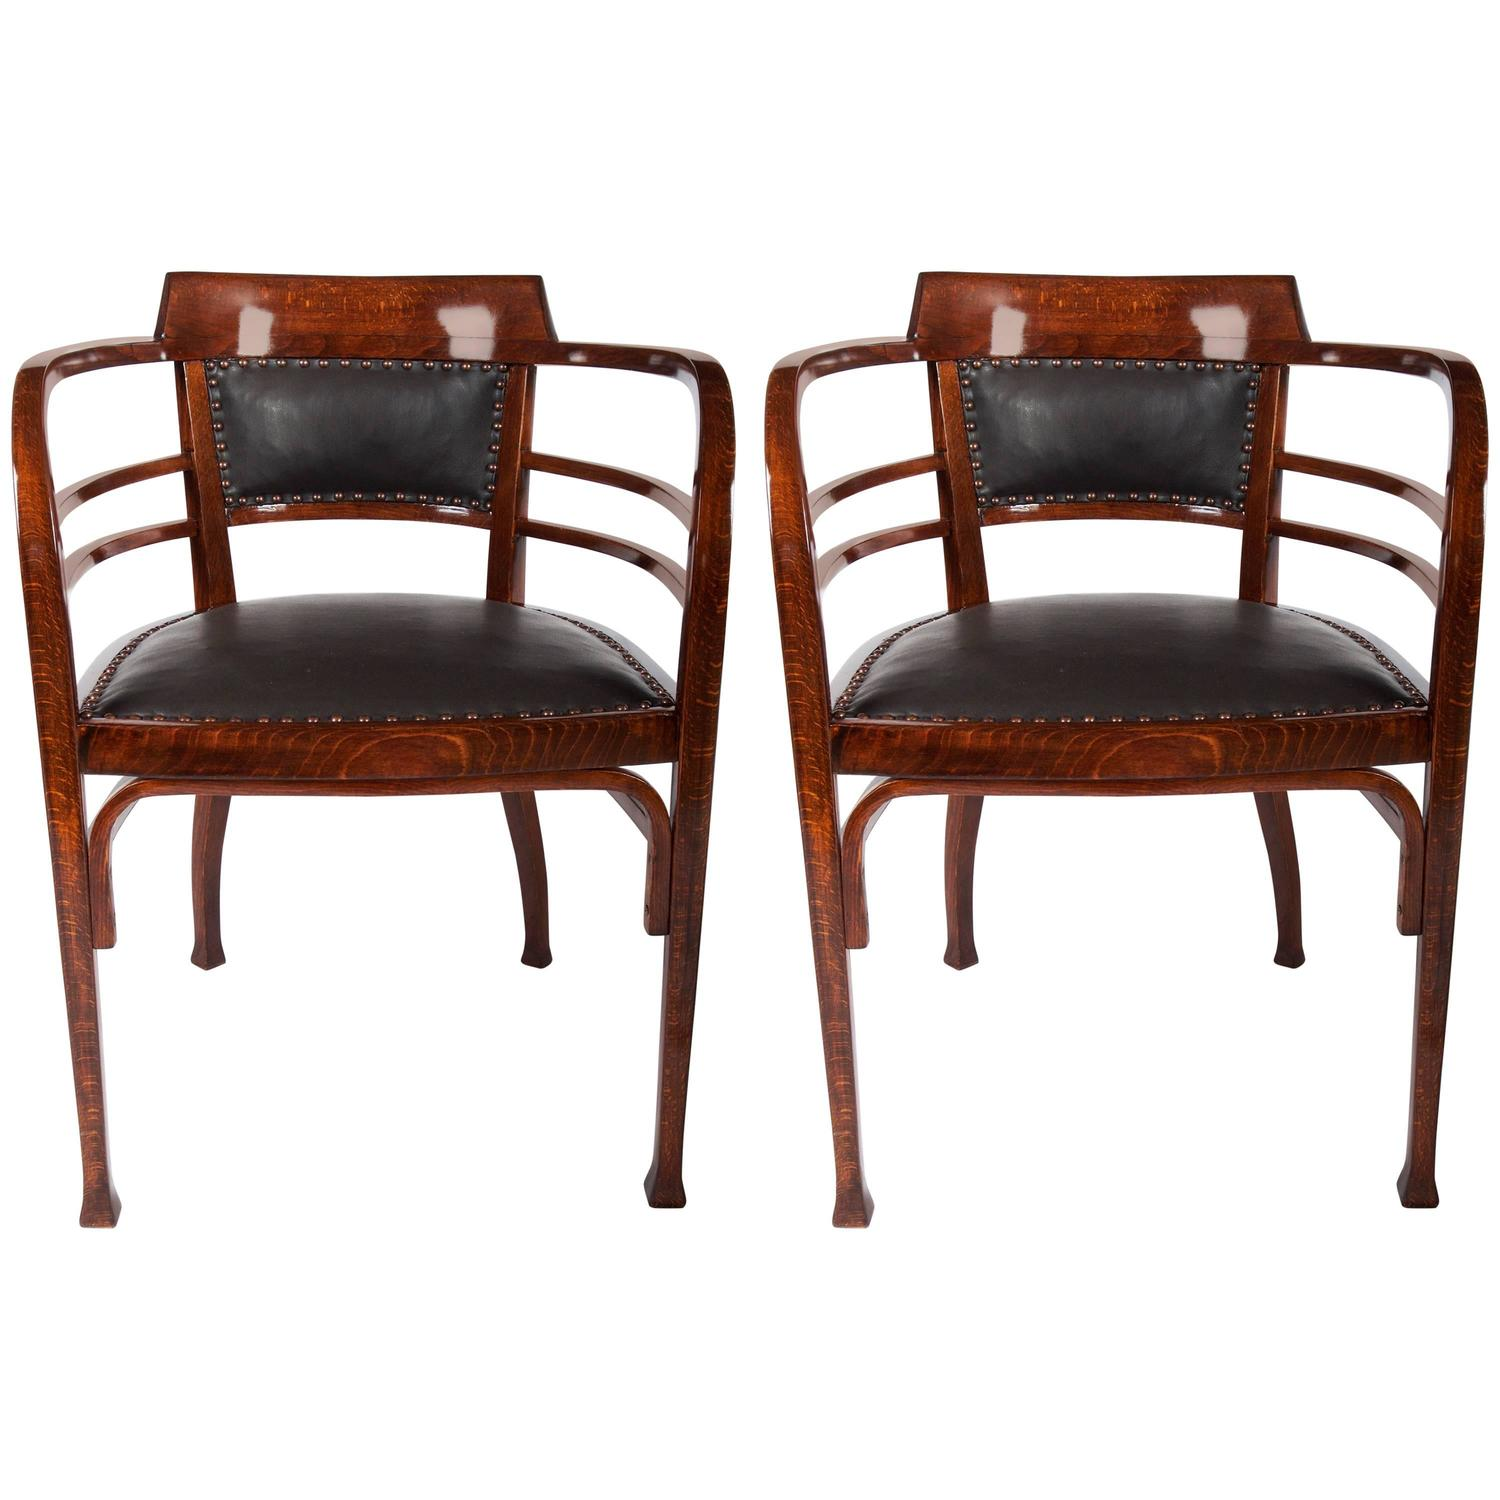 Otto Wagner Sofa Thonet Armchairs By Otto Wagner For Sale At 1stdibs